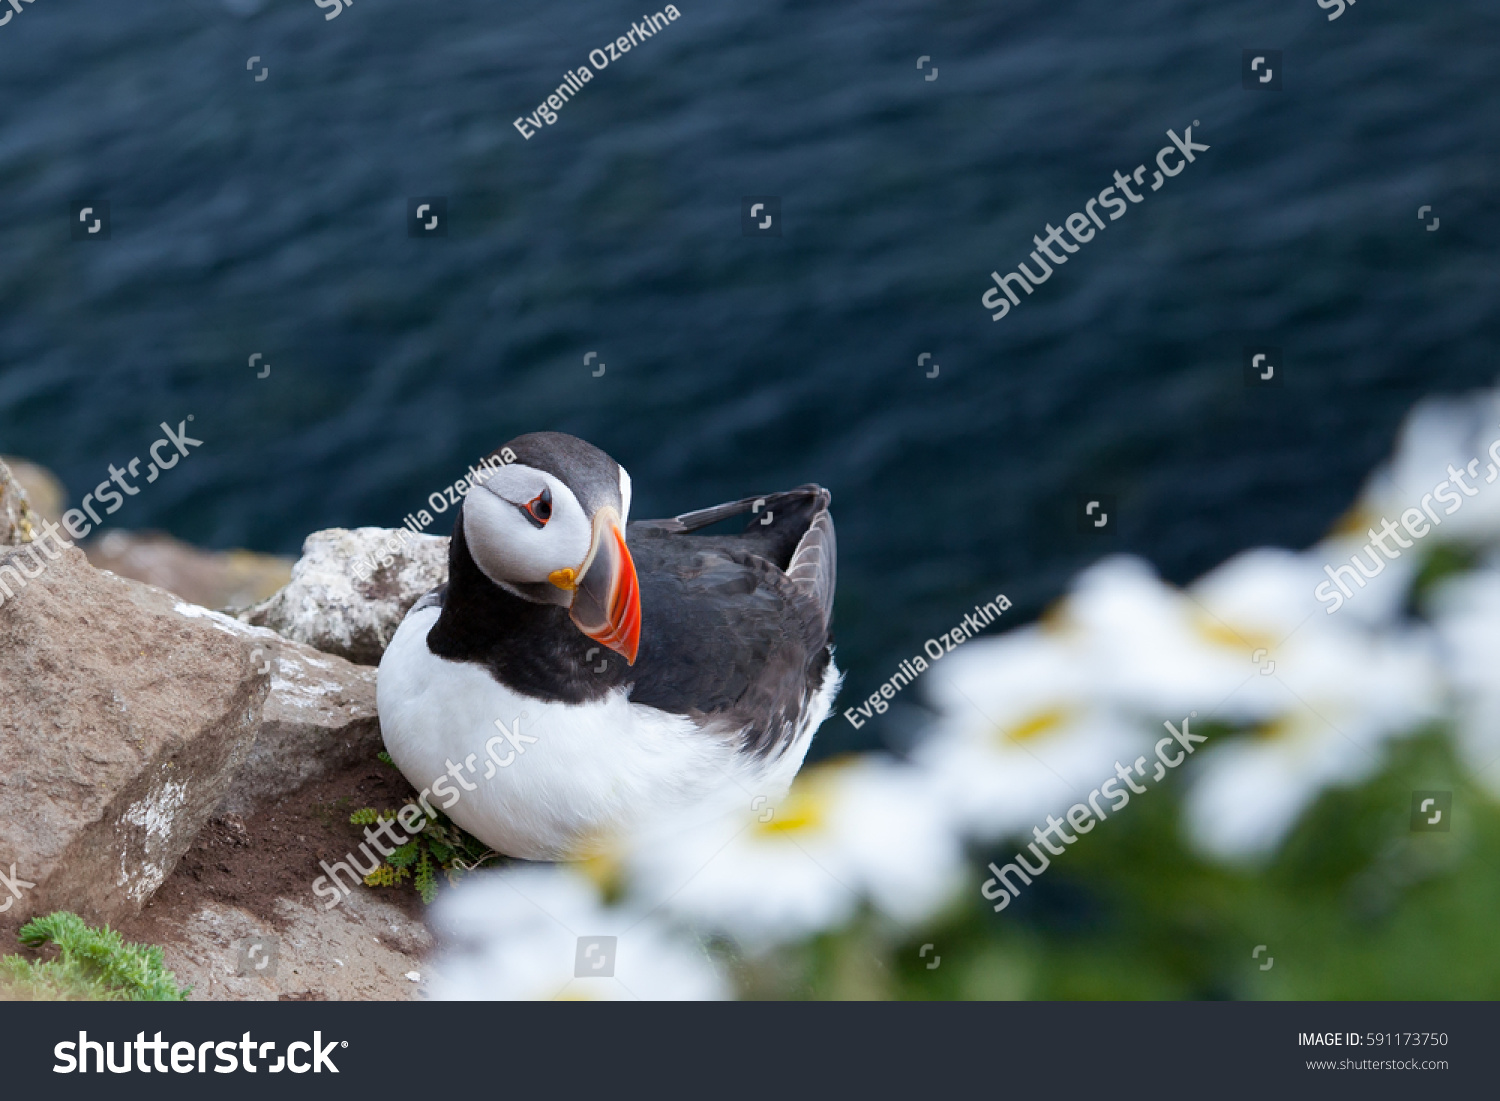 stock-photo-puffin-in-grass-on-backgouun